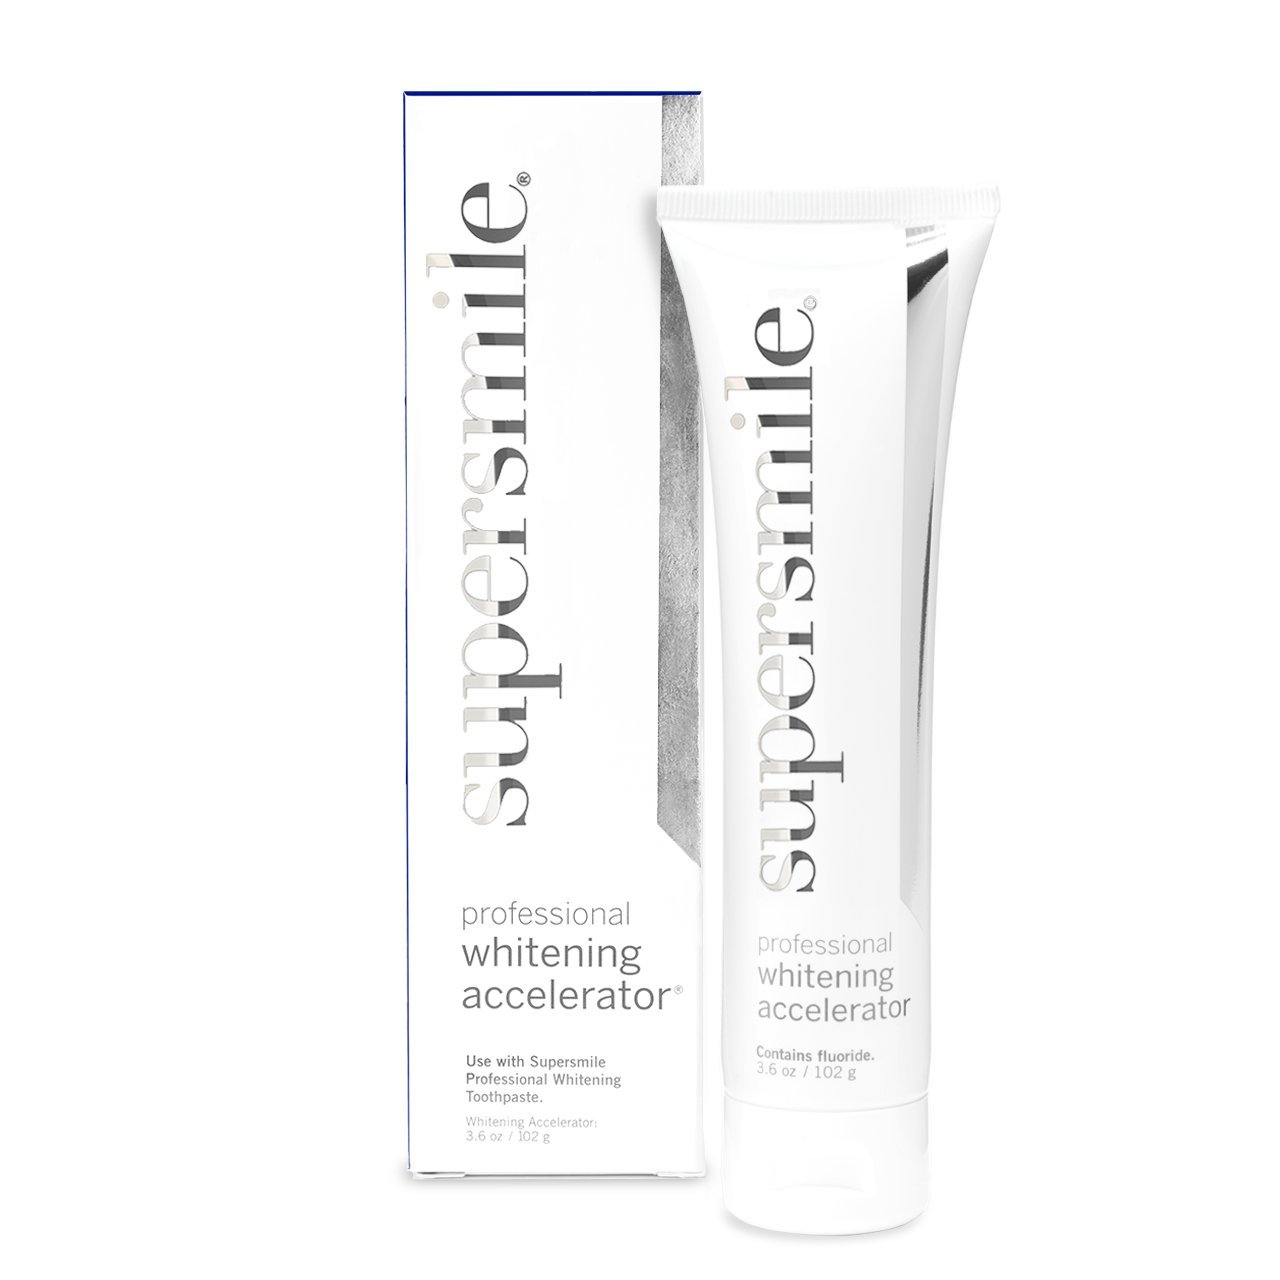 Supersmile Professional Whitening Accelerator - Lifts Deep-Set Stains, Quick Teeth Whitening, No Sensitivity, 3 Month Supply – 3.6 Ounce